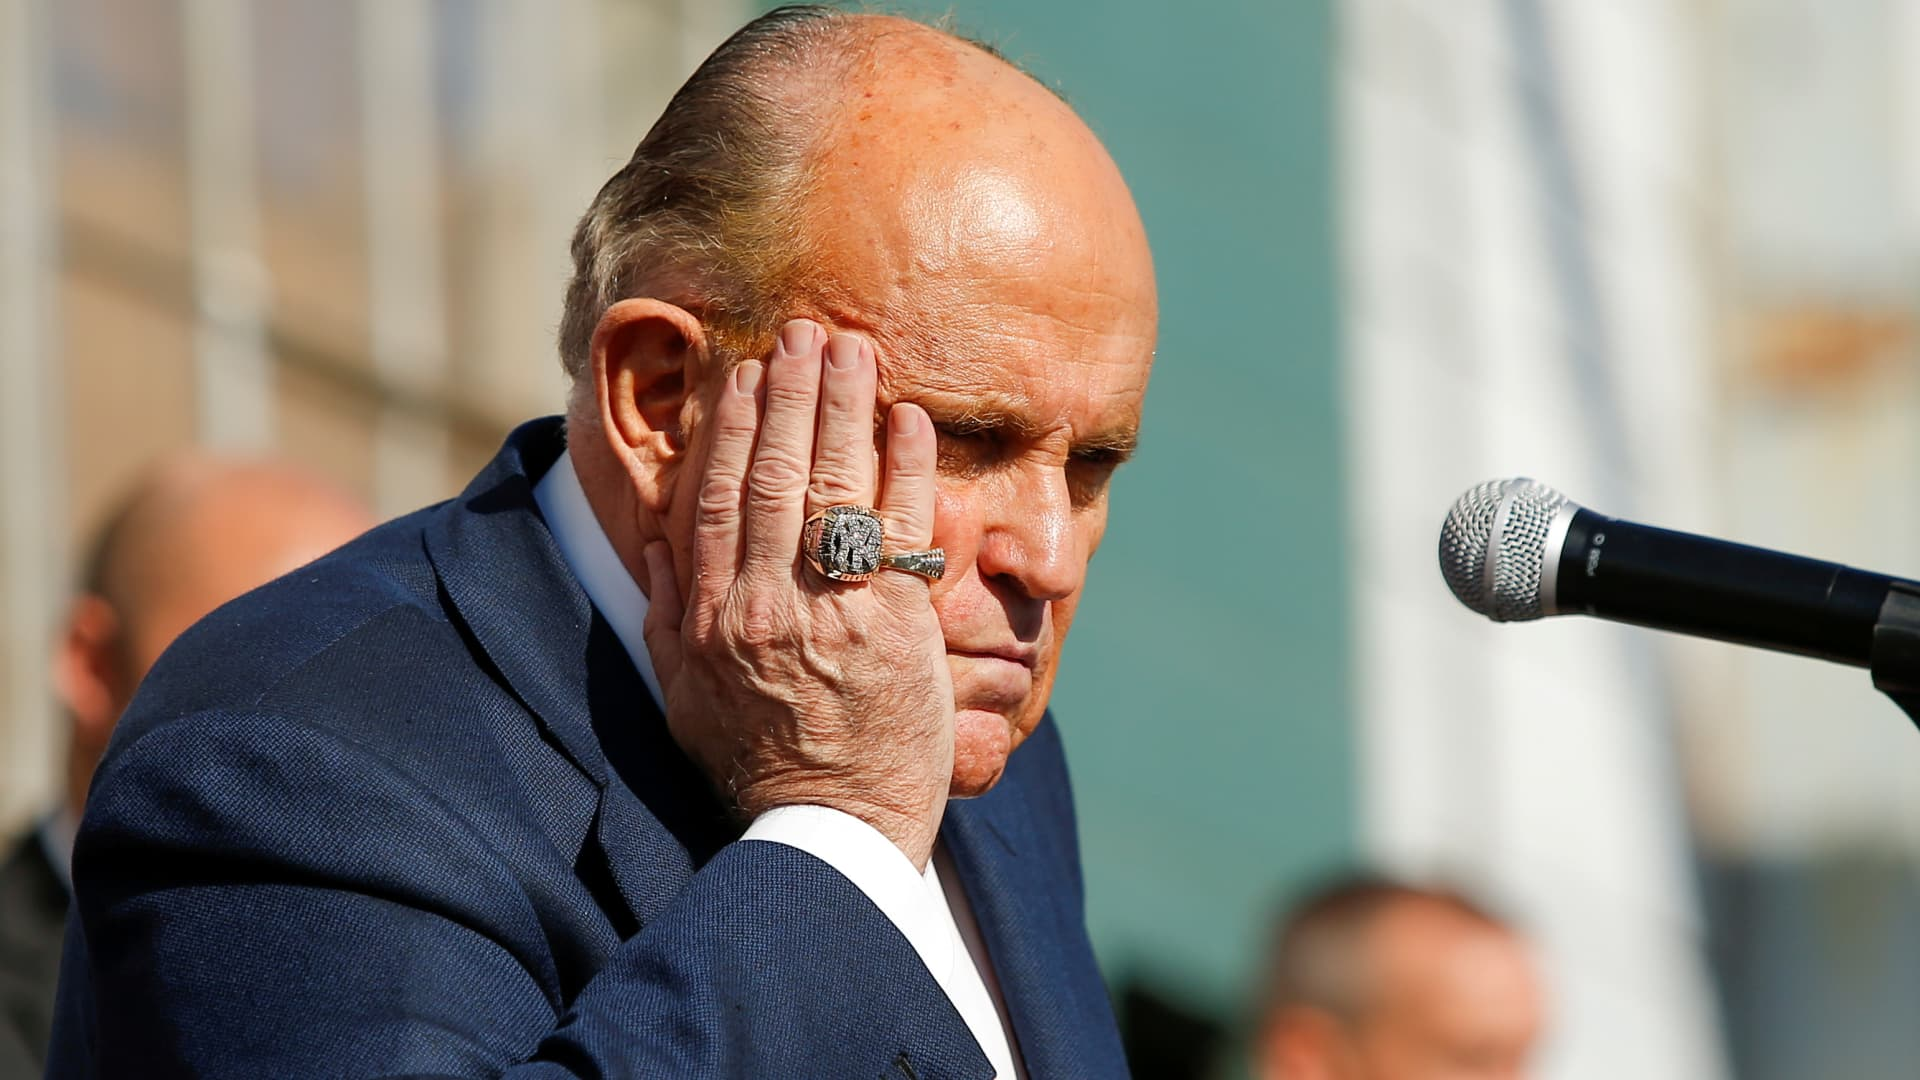 Former New York City Mayor Rudy Giuliani, personal attorney to U.S. President Donald Trump, gestures after media announced that Democratic U.S. presidential nominee Joe Biden has won the 2020 U.S. presidential election, in, Philadelphia, Pennsylvania, U.S., November 7, 2020.